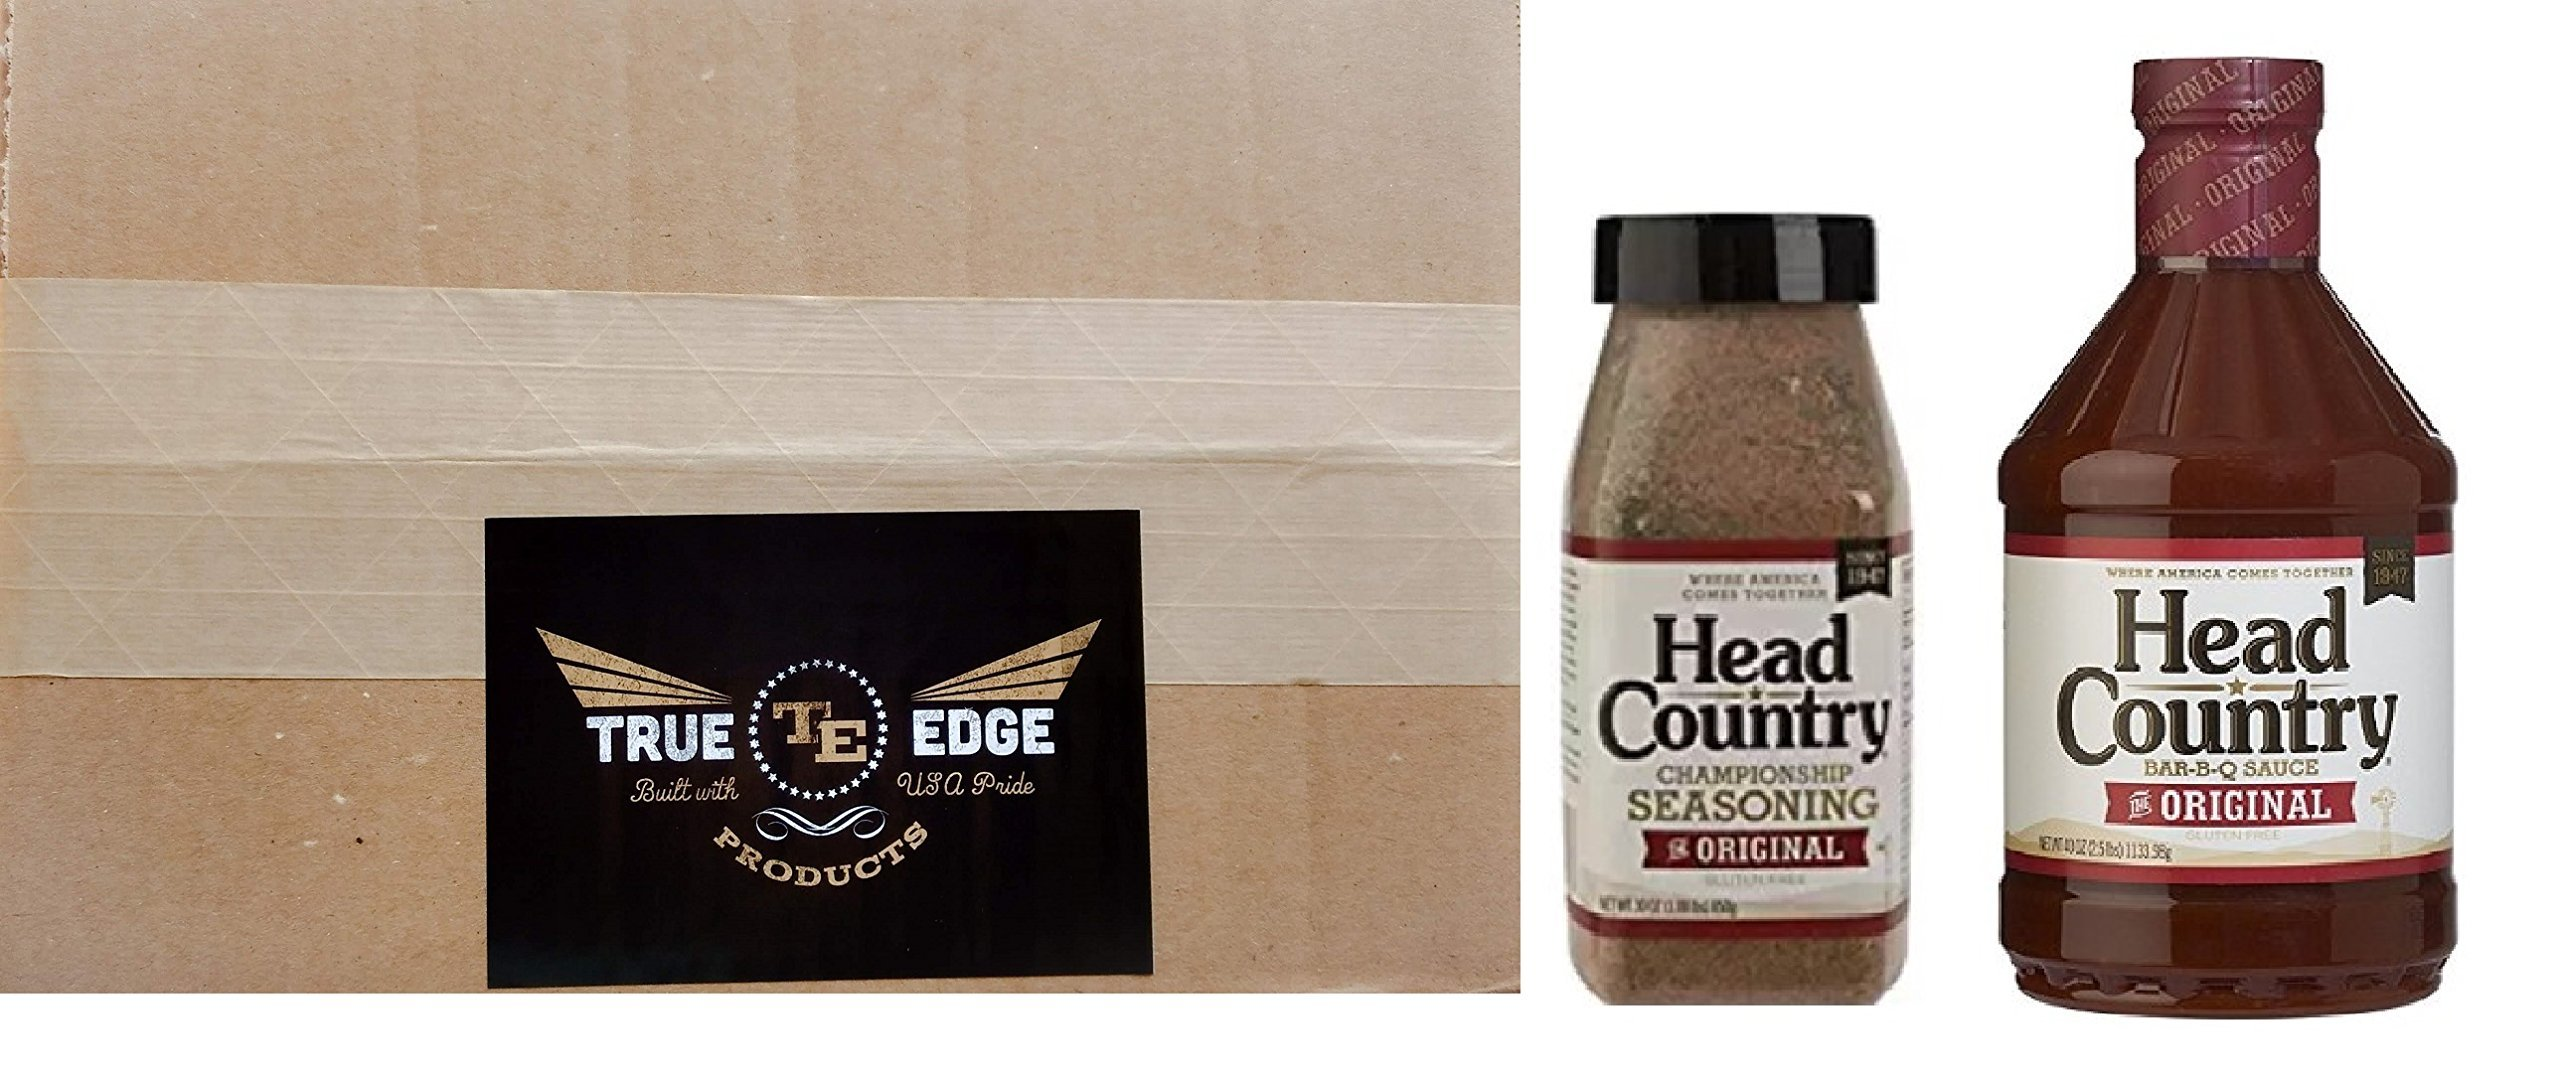 Head Country Bundle (2) includes 30 oz. Championship Seasoning and 40 oz. Original BBQ Sauce